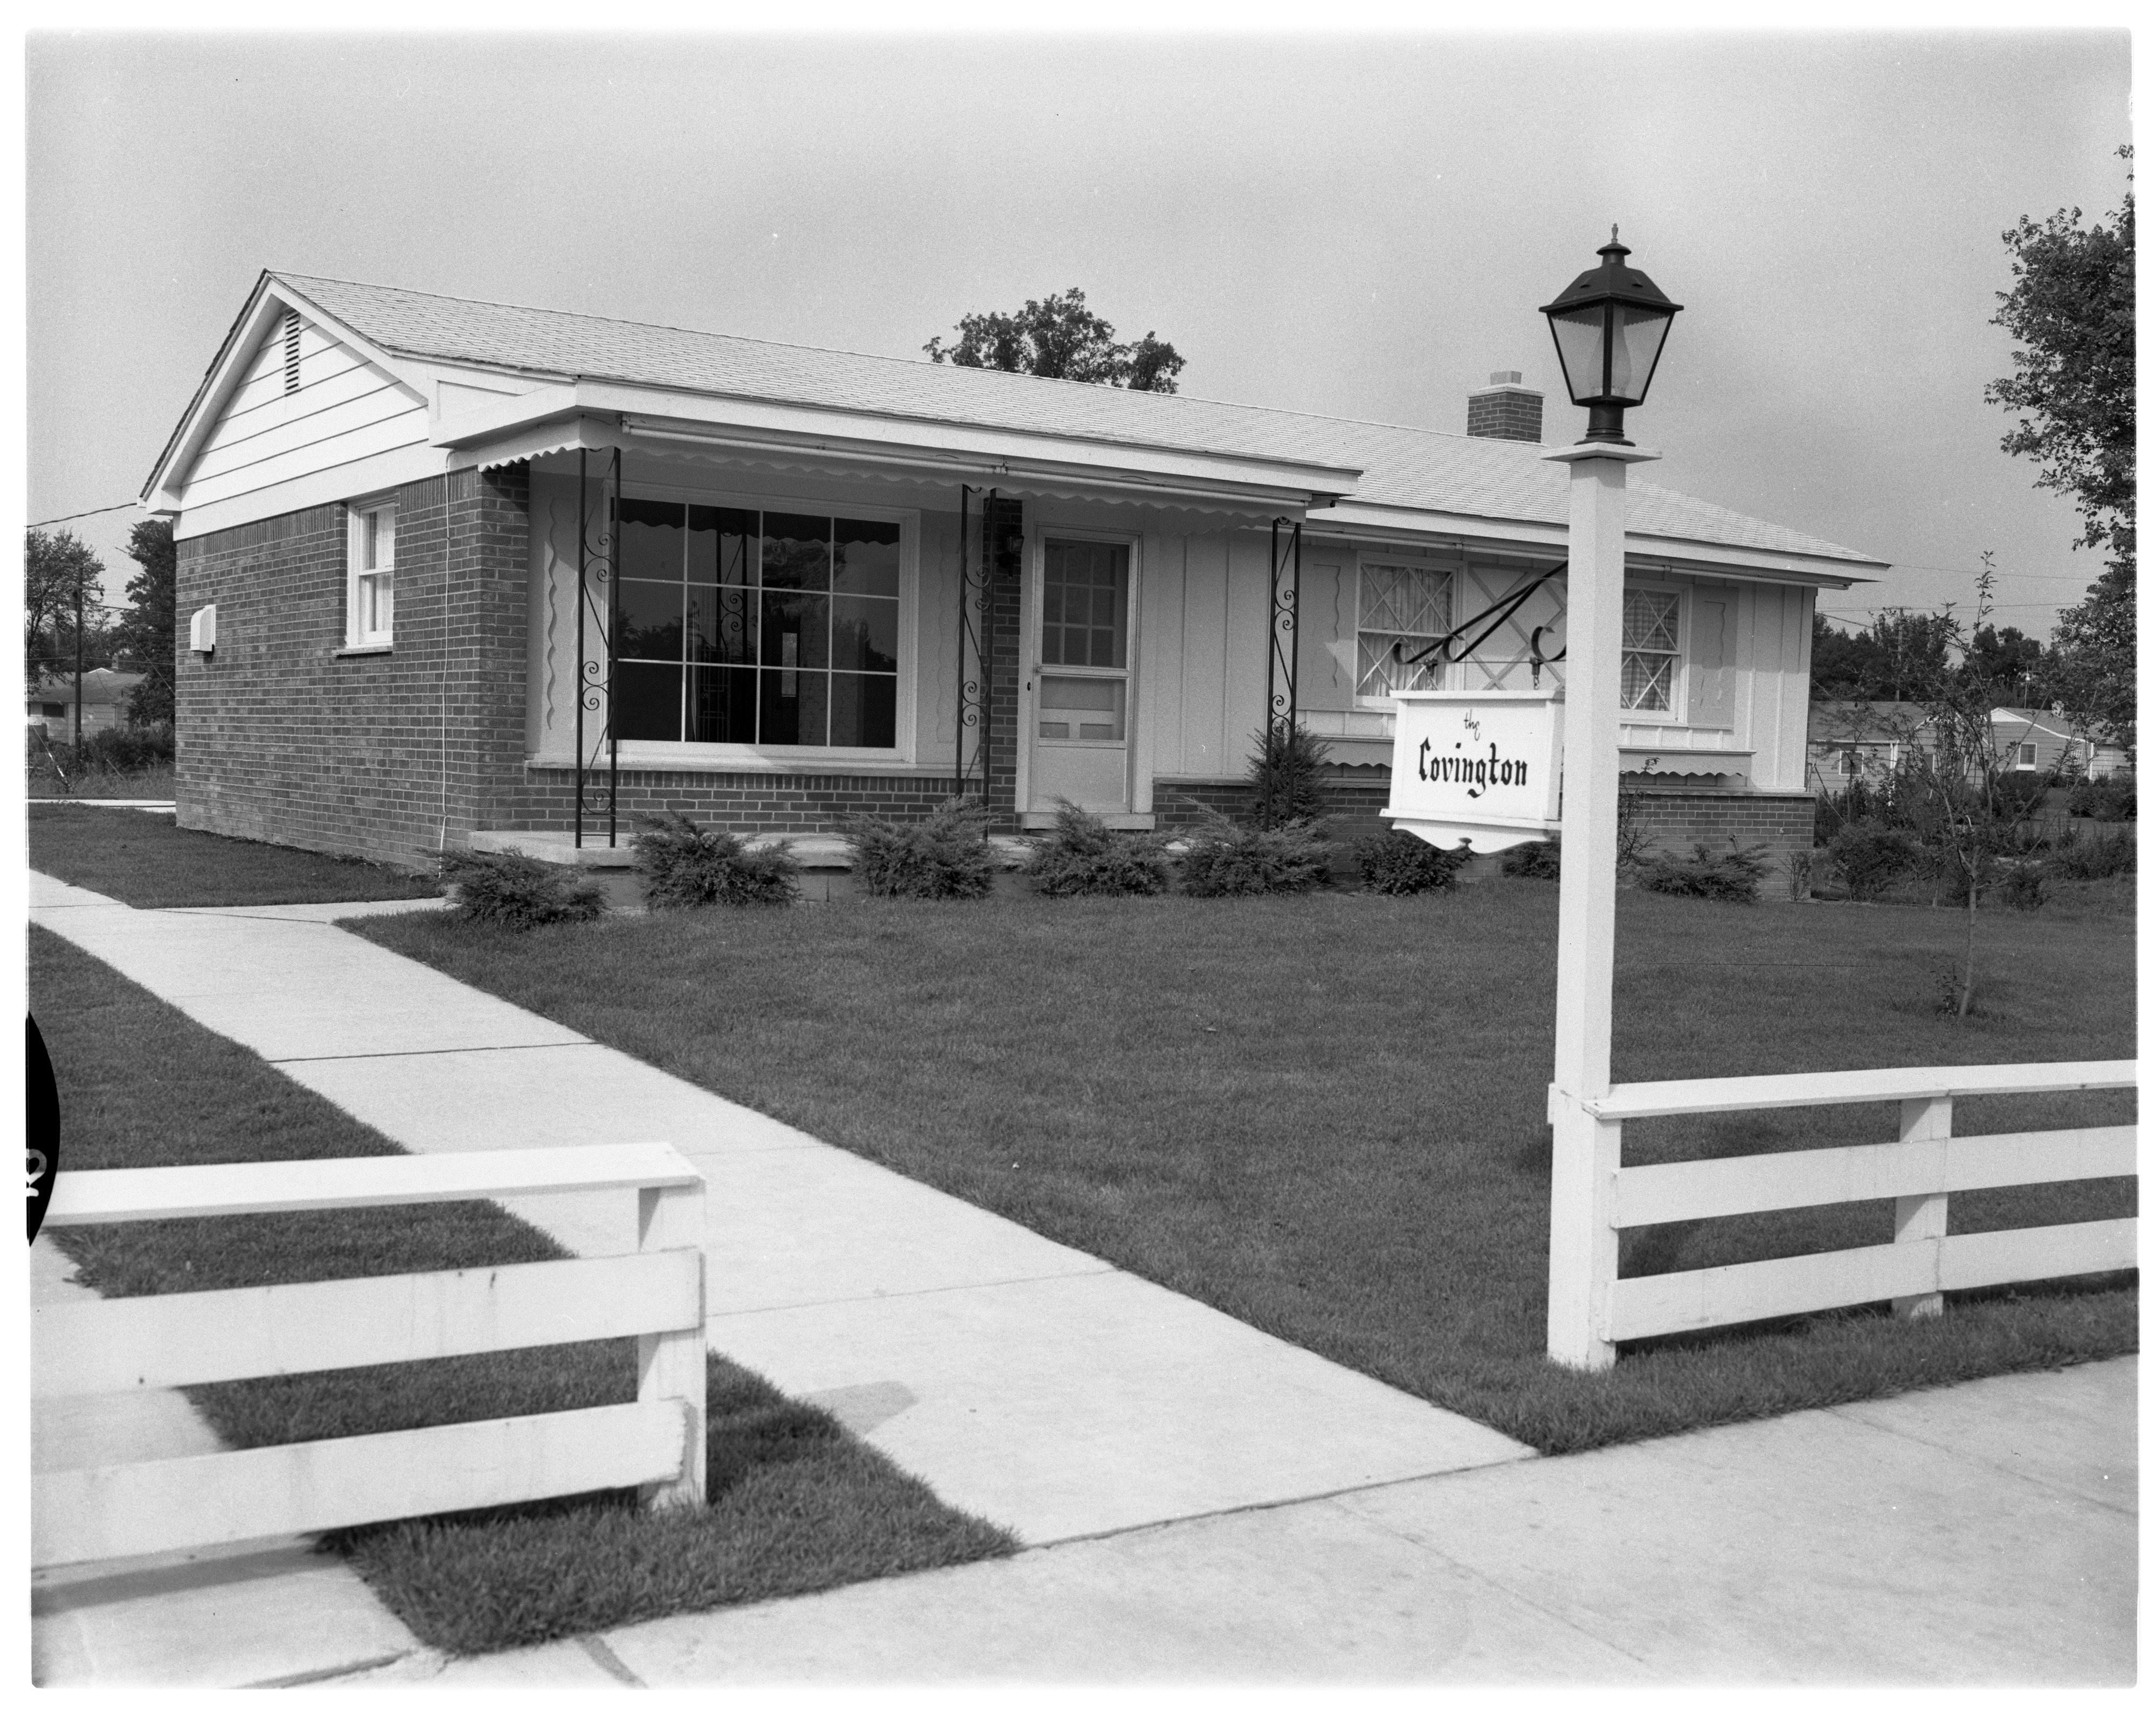 """Covington"" Model Home in Forestbrooke Subdivision, September 1960 image"